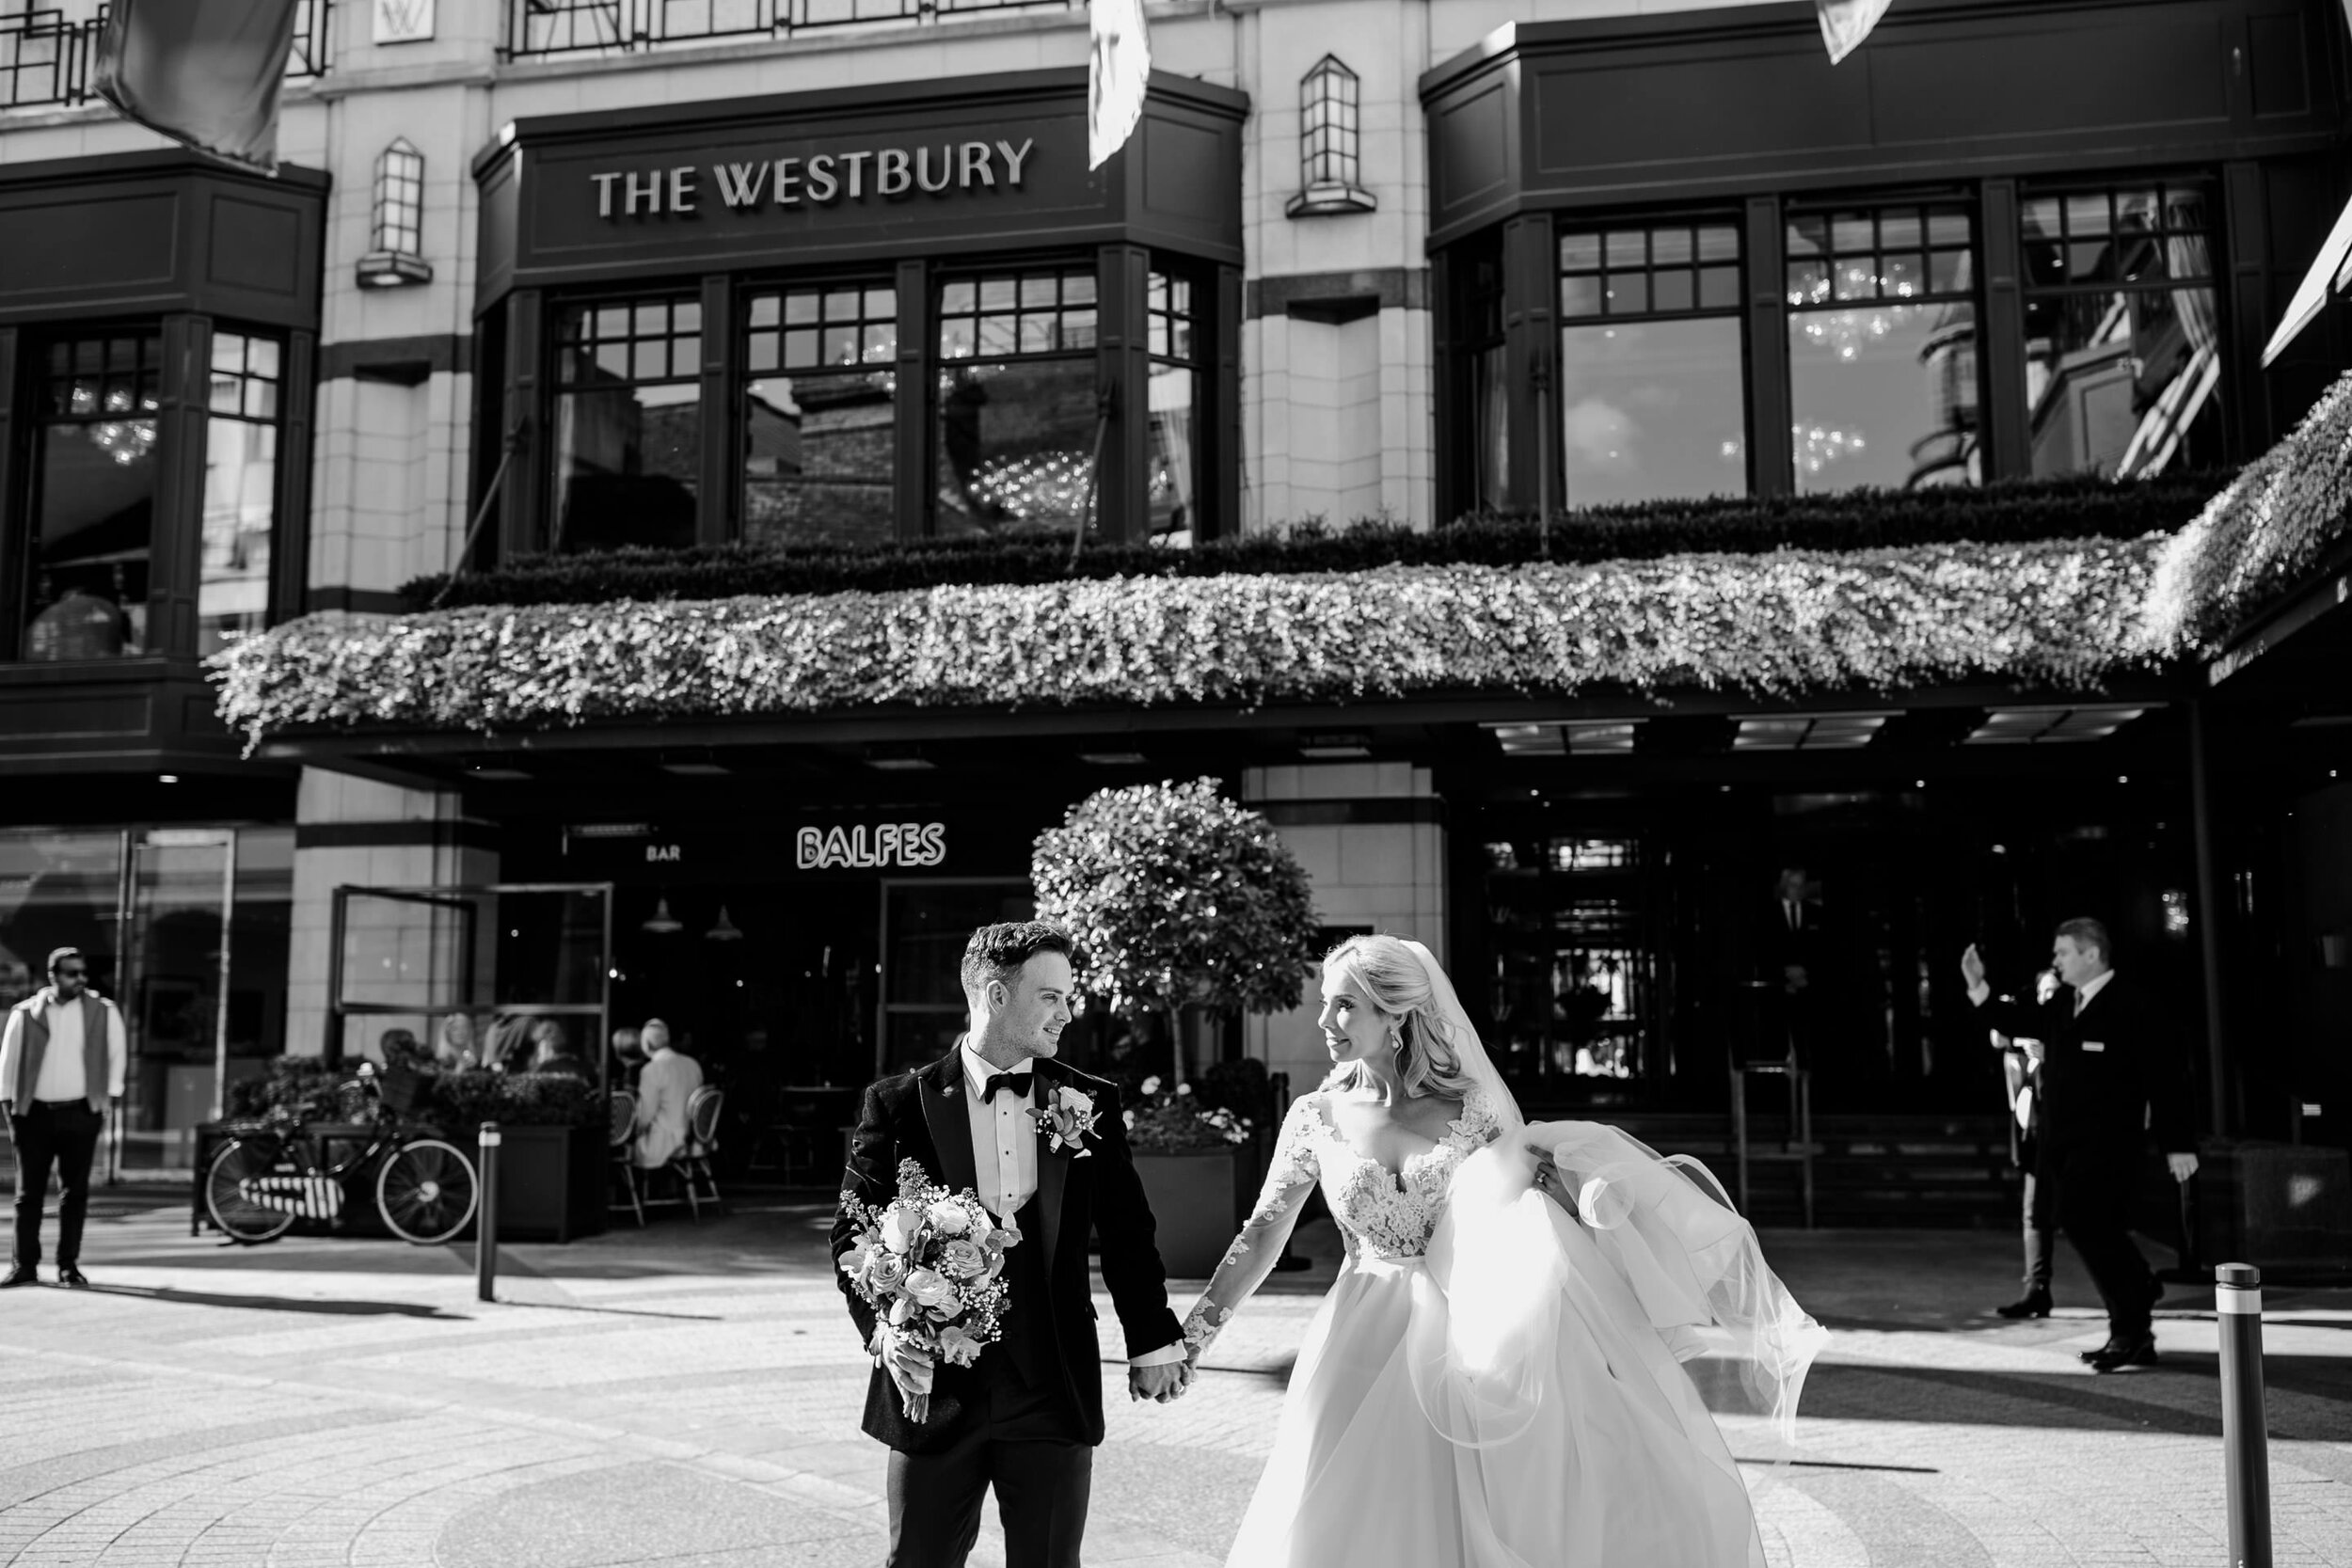 c&s_the_westbury_wedding_photographer_livia_figueiredo_32.jpg